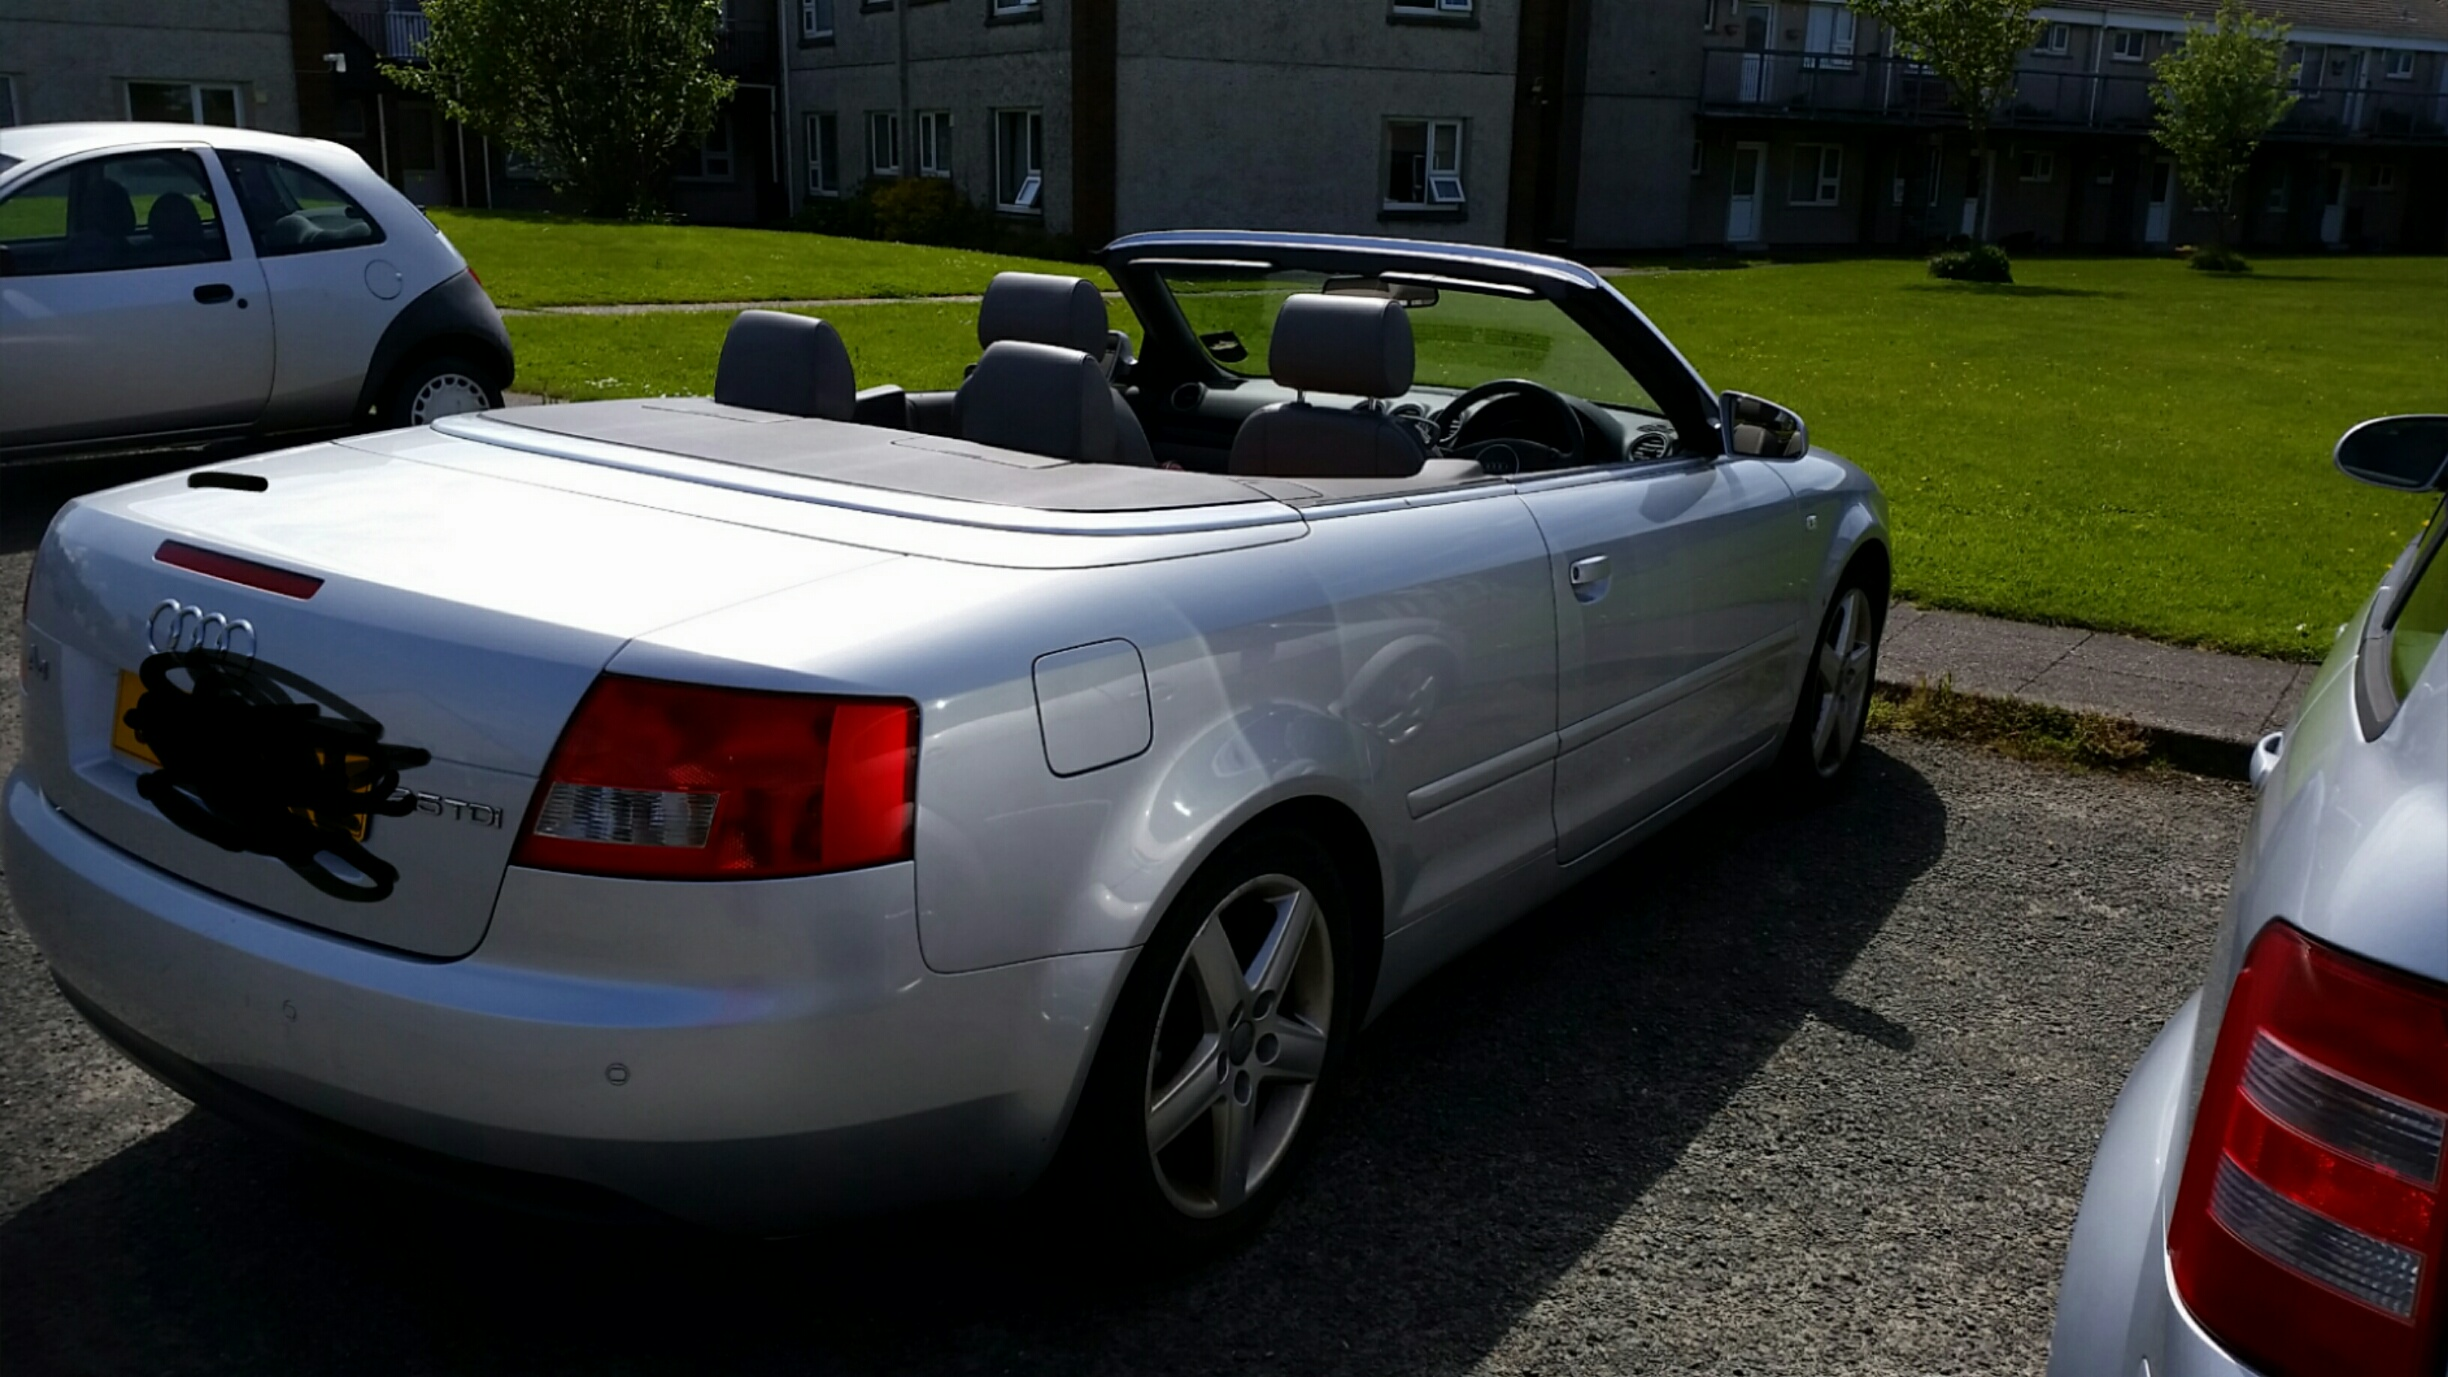 Audi A4 convertible tdi 2.5 from private